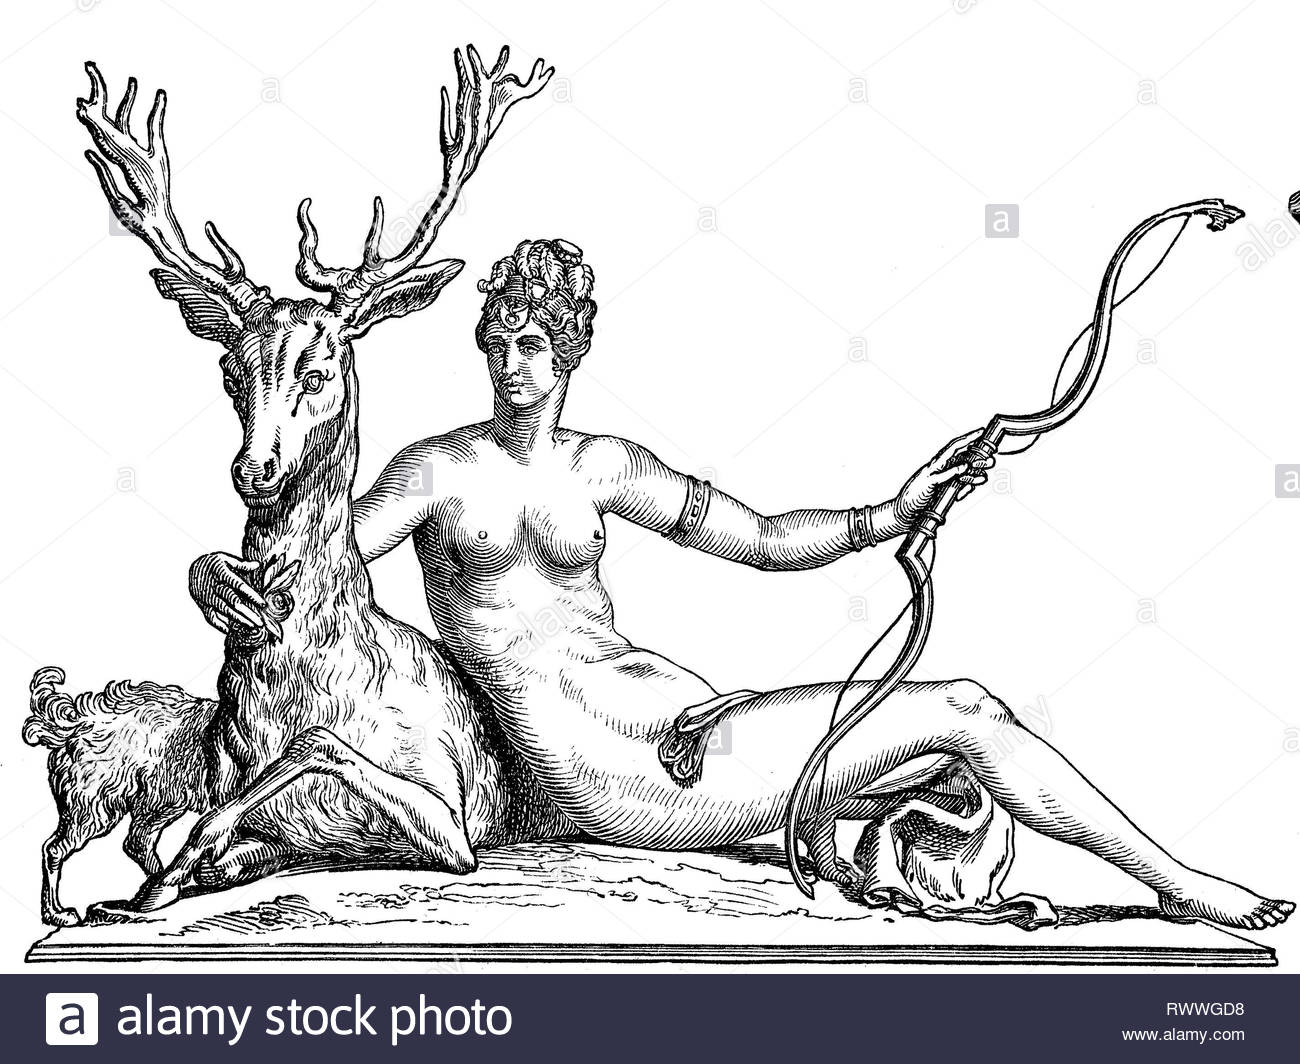 Digital improved reproduction, Diana, a Roman goddess of the hunt, the Moon, and nature, associated with wild animals and woodland, made by Jean Goujon, original woodprint from th 19th century - Stock Image